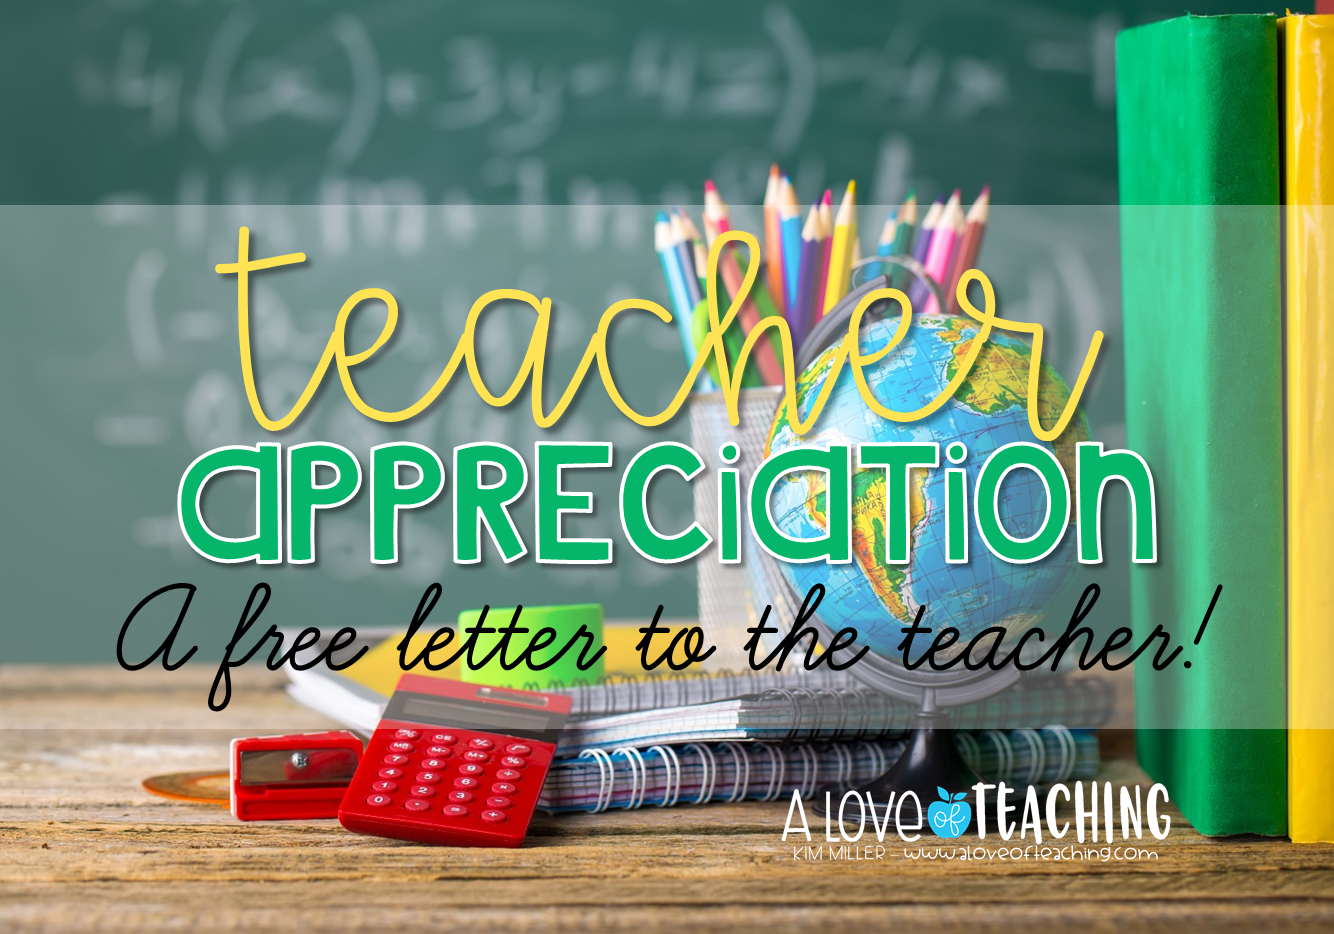 Teacher Appreciation: A FREE LETTER to the Teacher